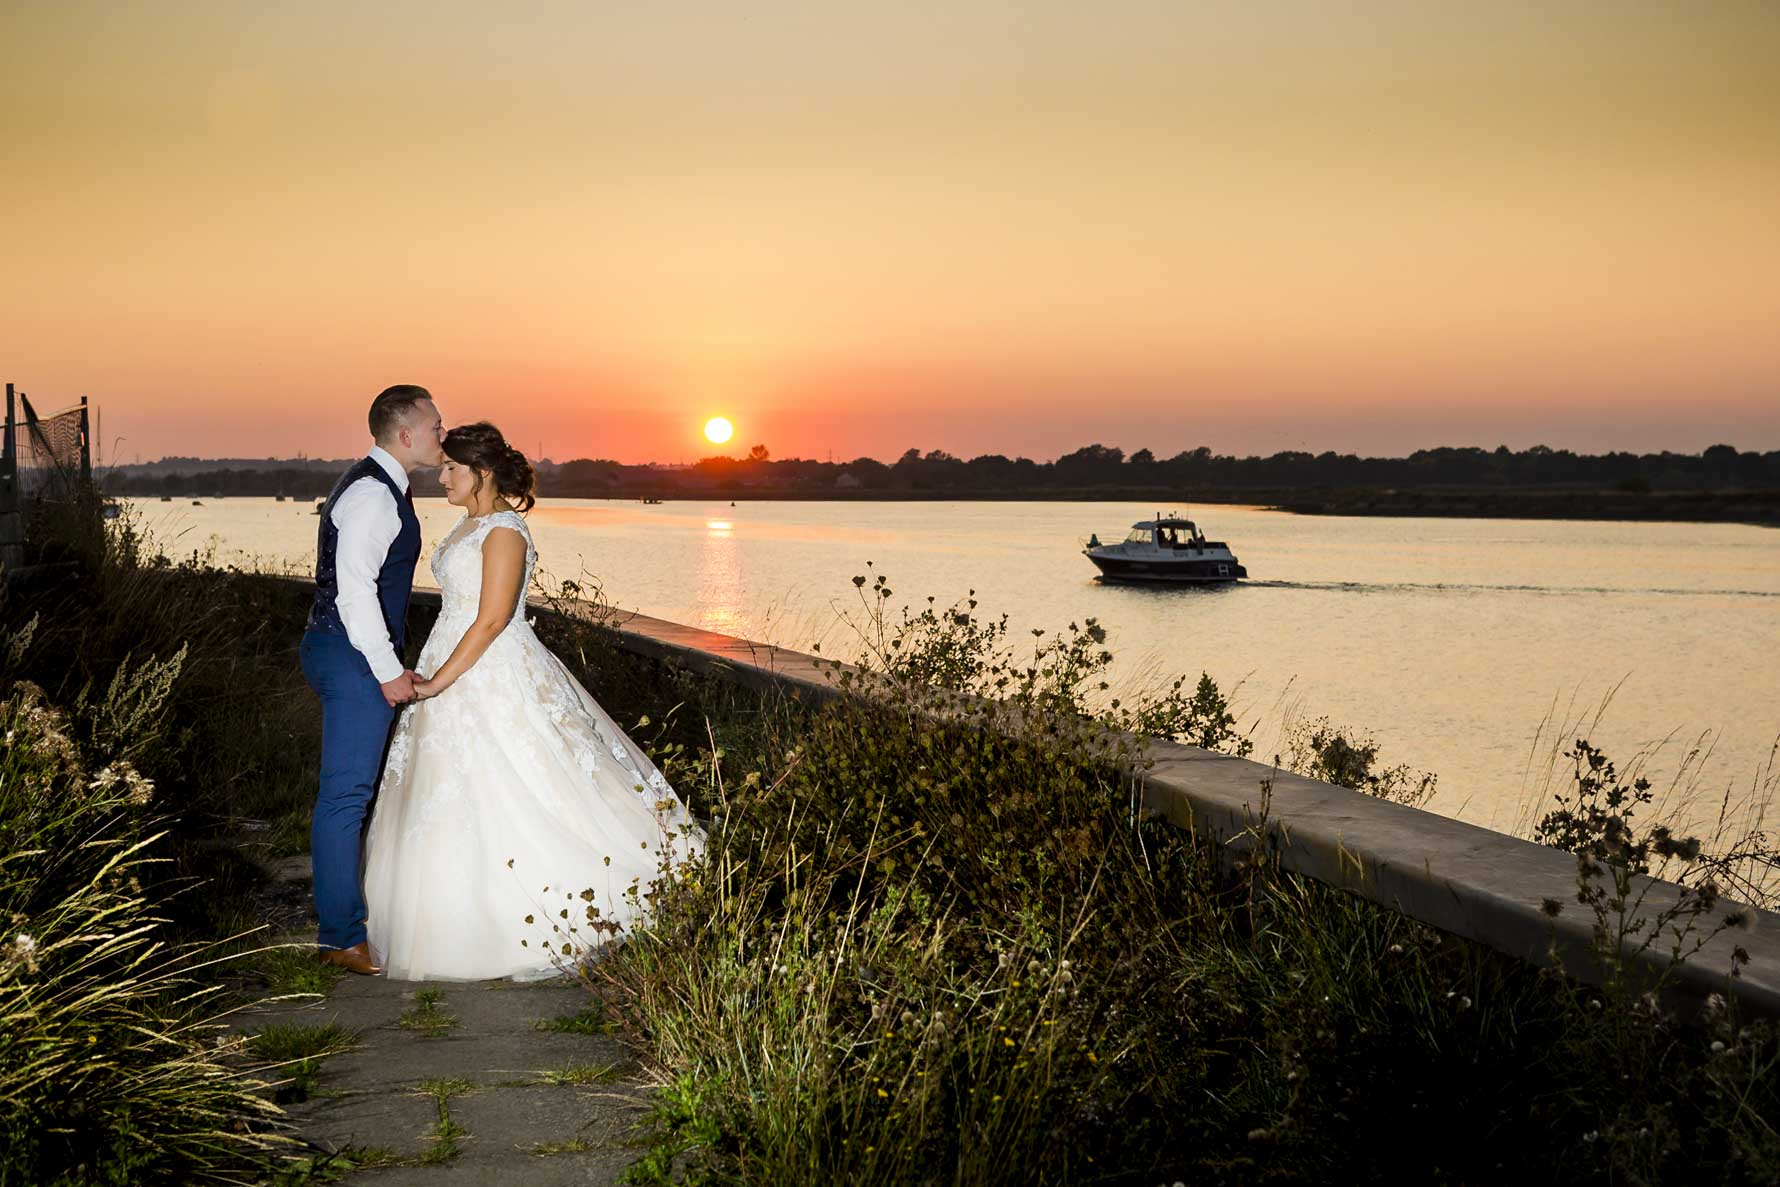 A bride and groom embrace net ot a river under a setting sun